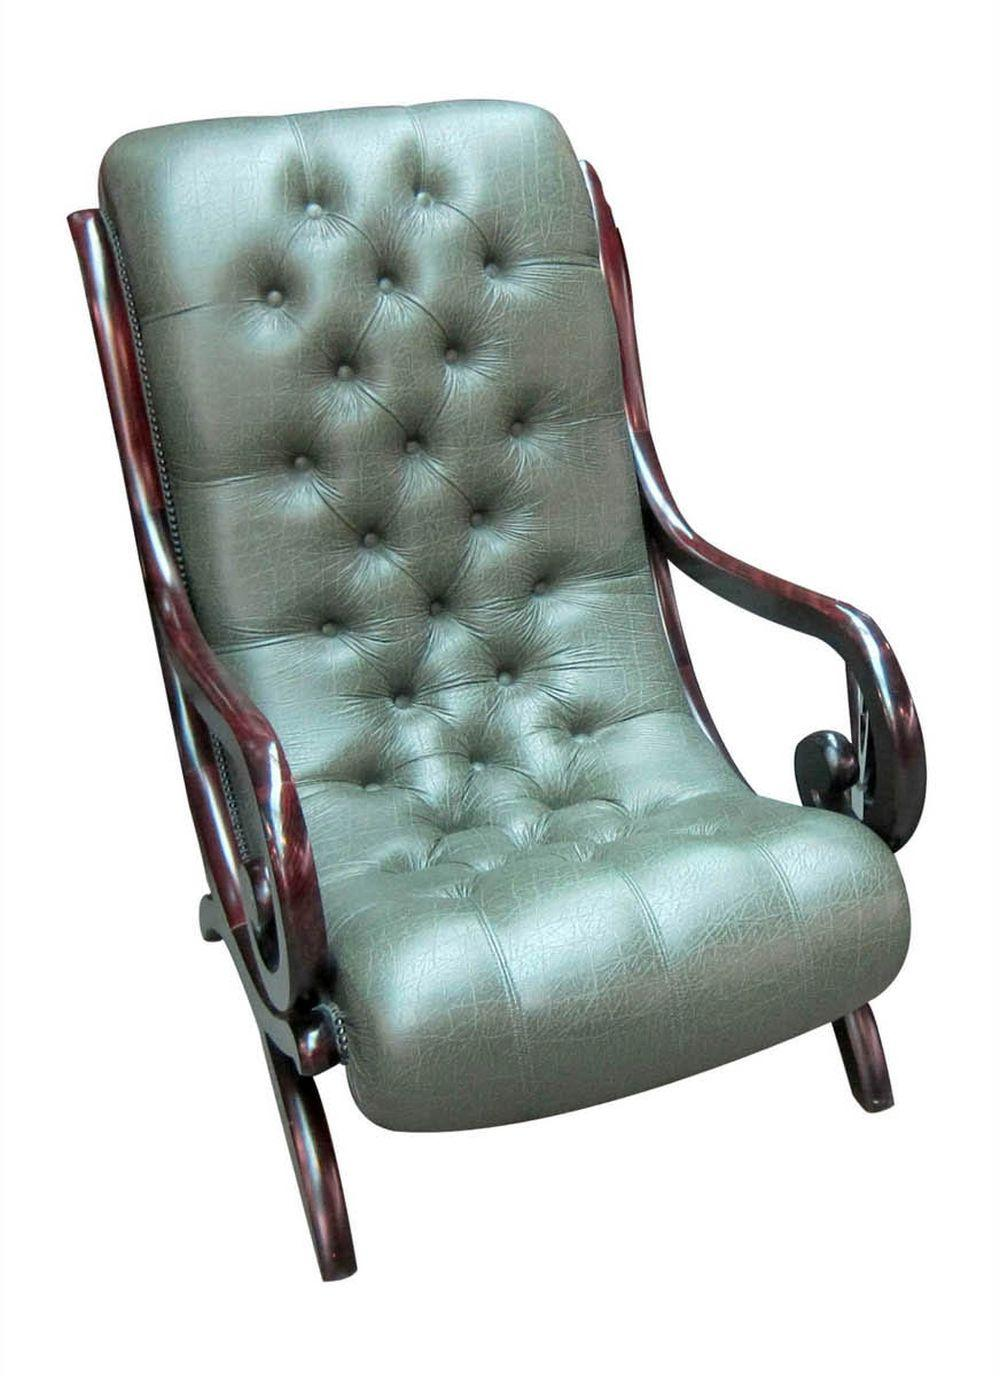 Art Deco-style leather armchair